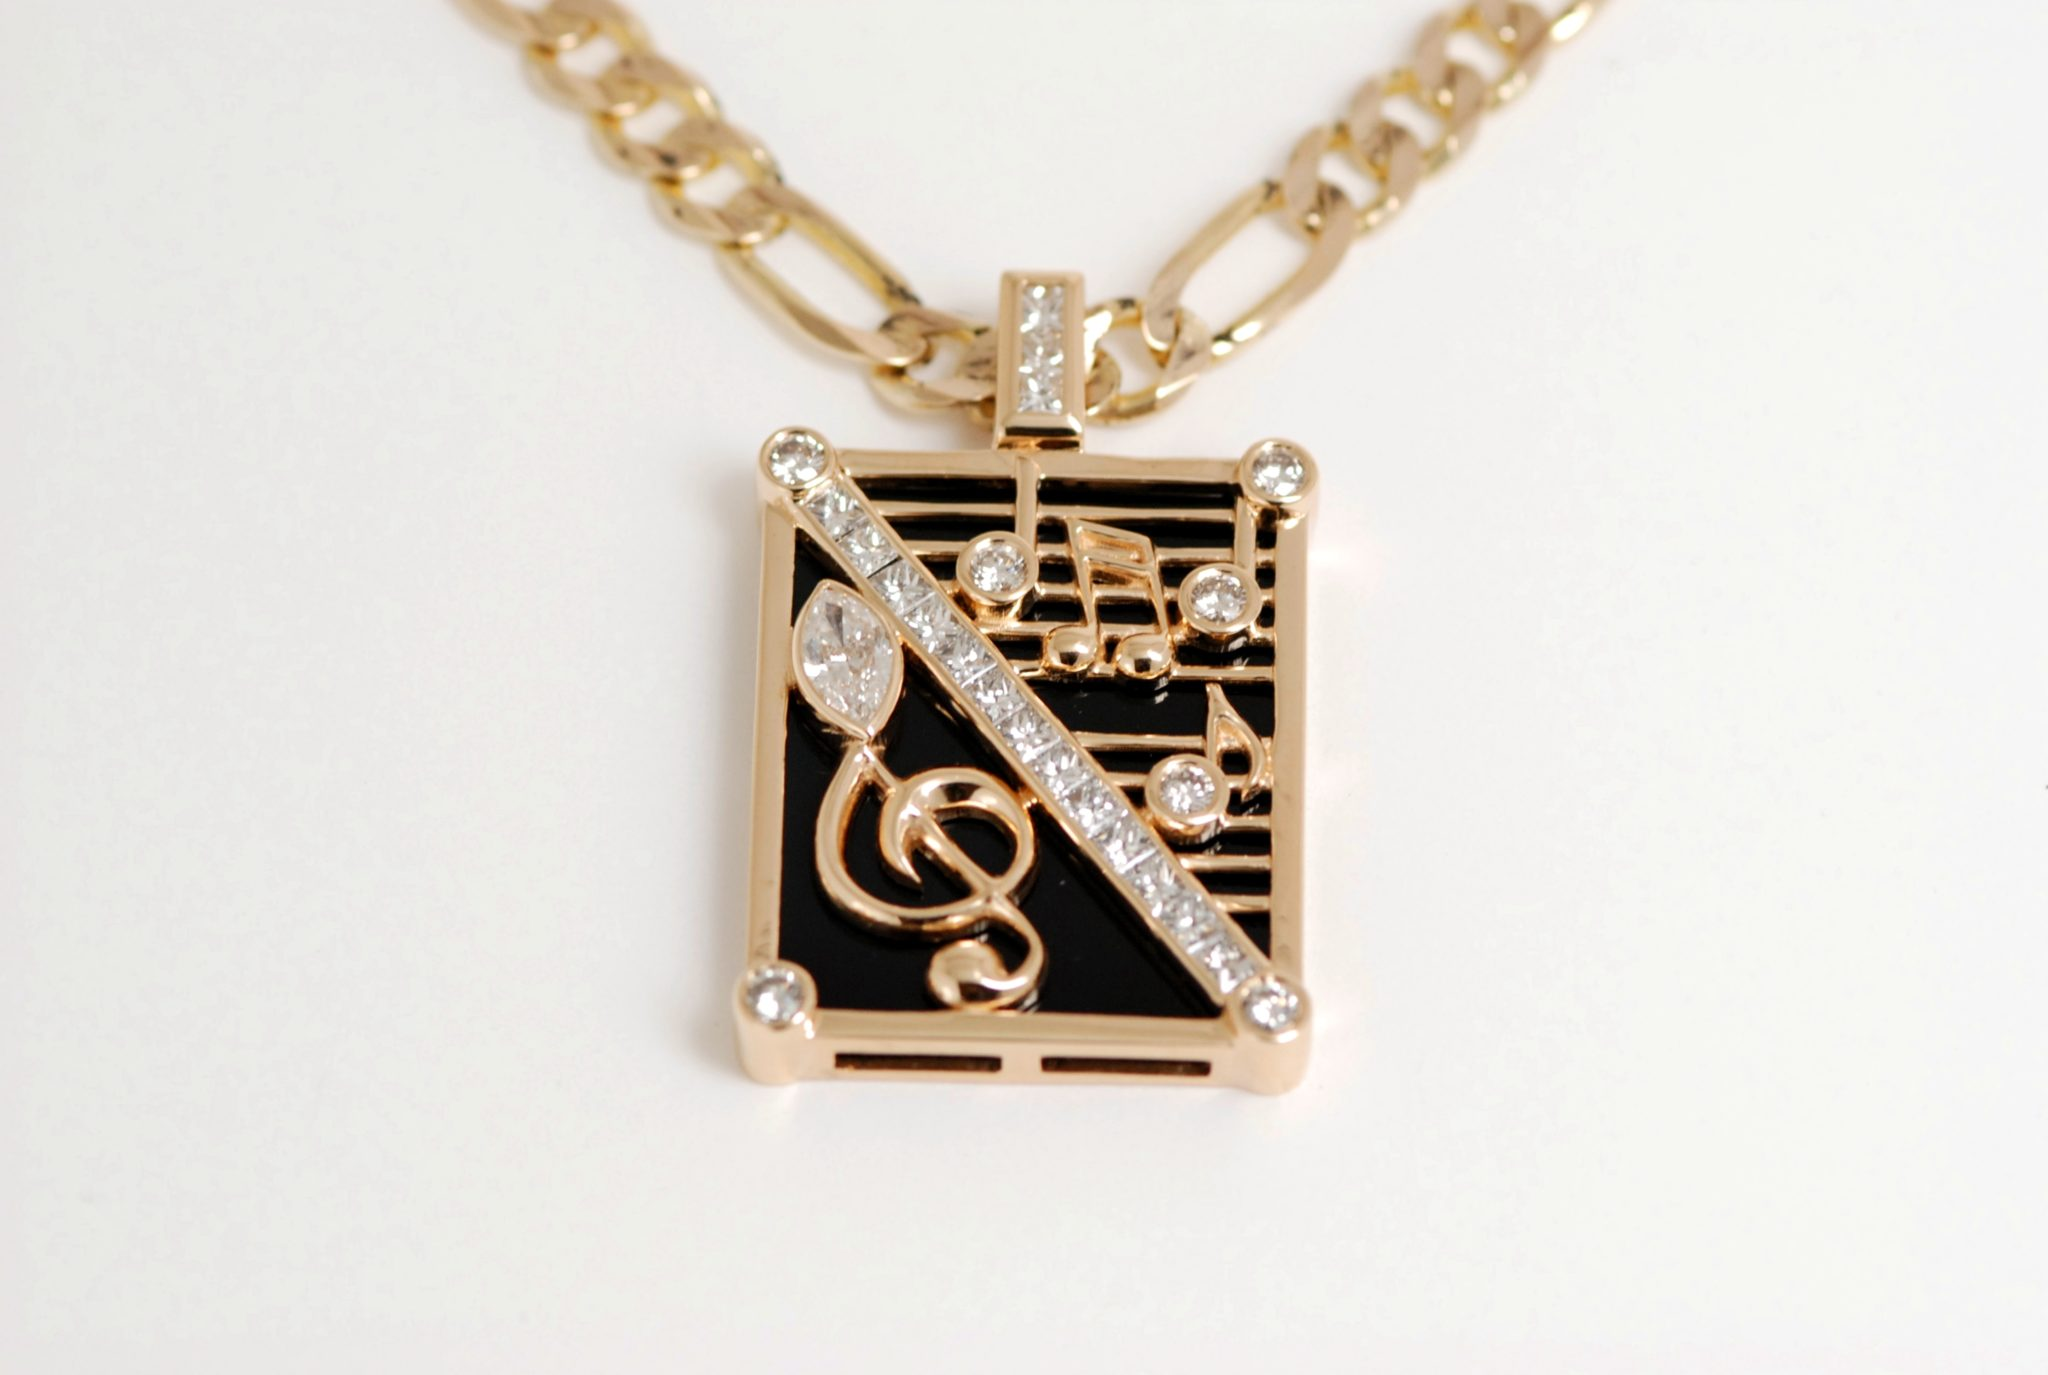 overstock tdw watches t diamond pendant gold w jewelry music today free i j product caressa note shipping